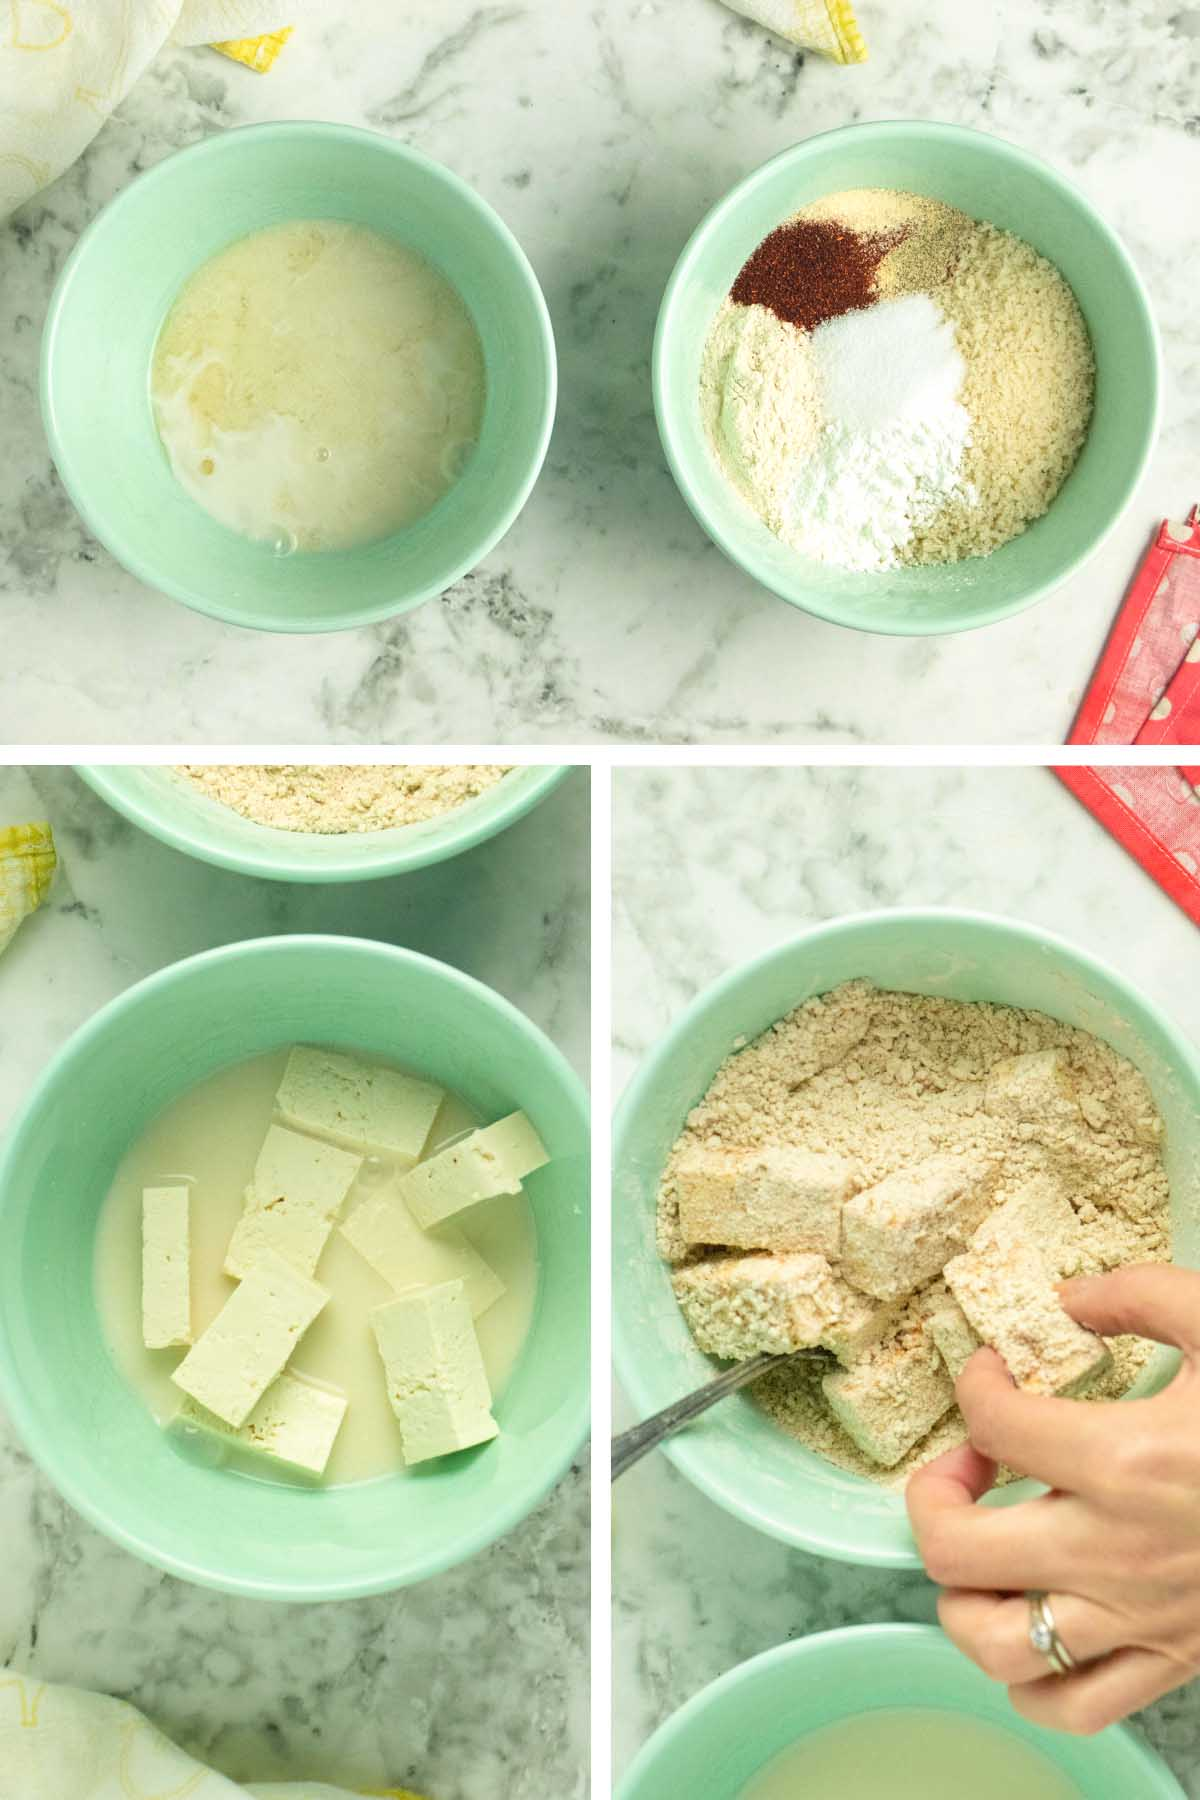 image collage showing the wet and dry ingredients bowls and showing the tofu in each bowl